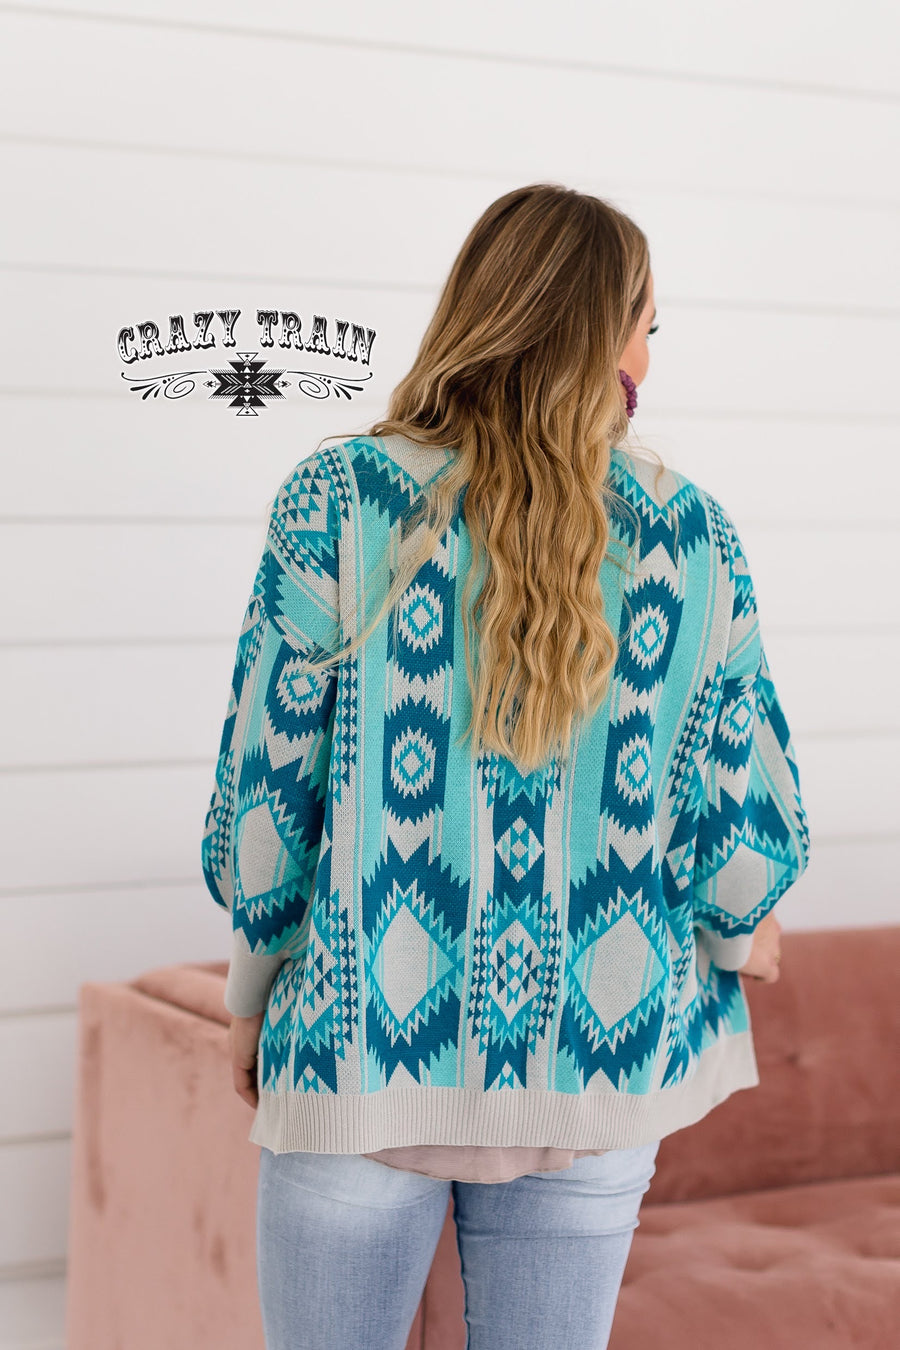 Rio Rancho Aztec Cardigan Sweater